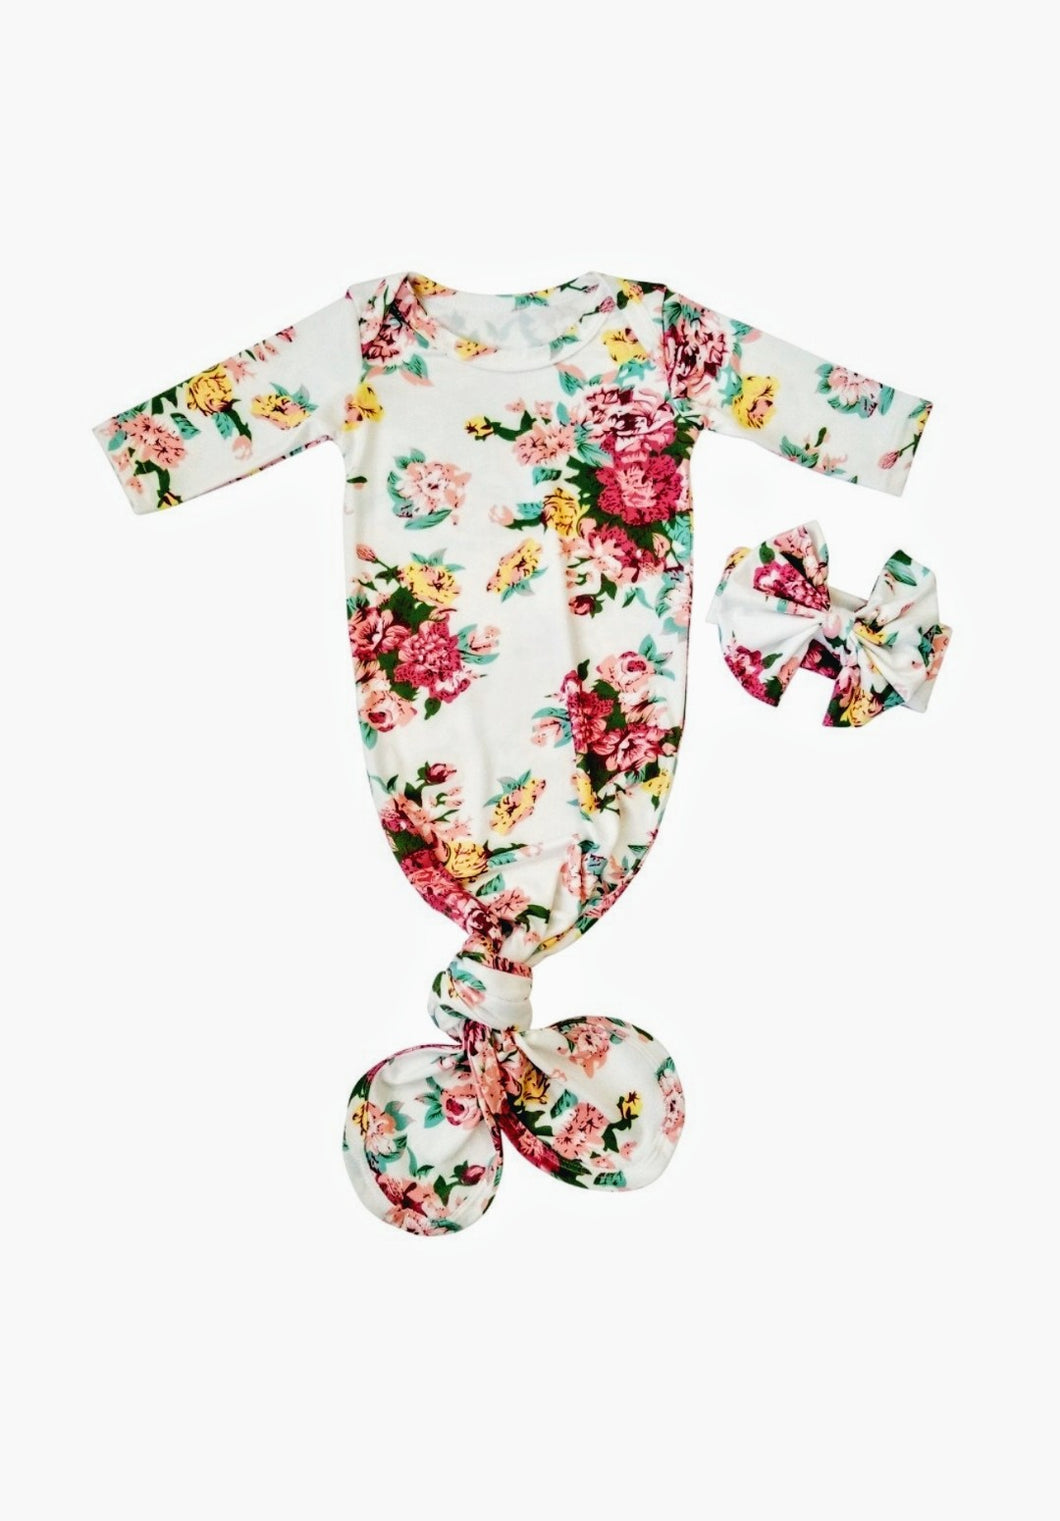 Scarlett Knotted Newborn Gown Coming Home Outfit Girl - Adassa Rose